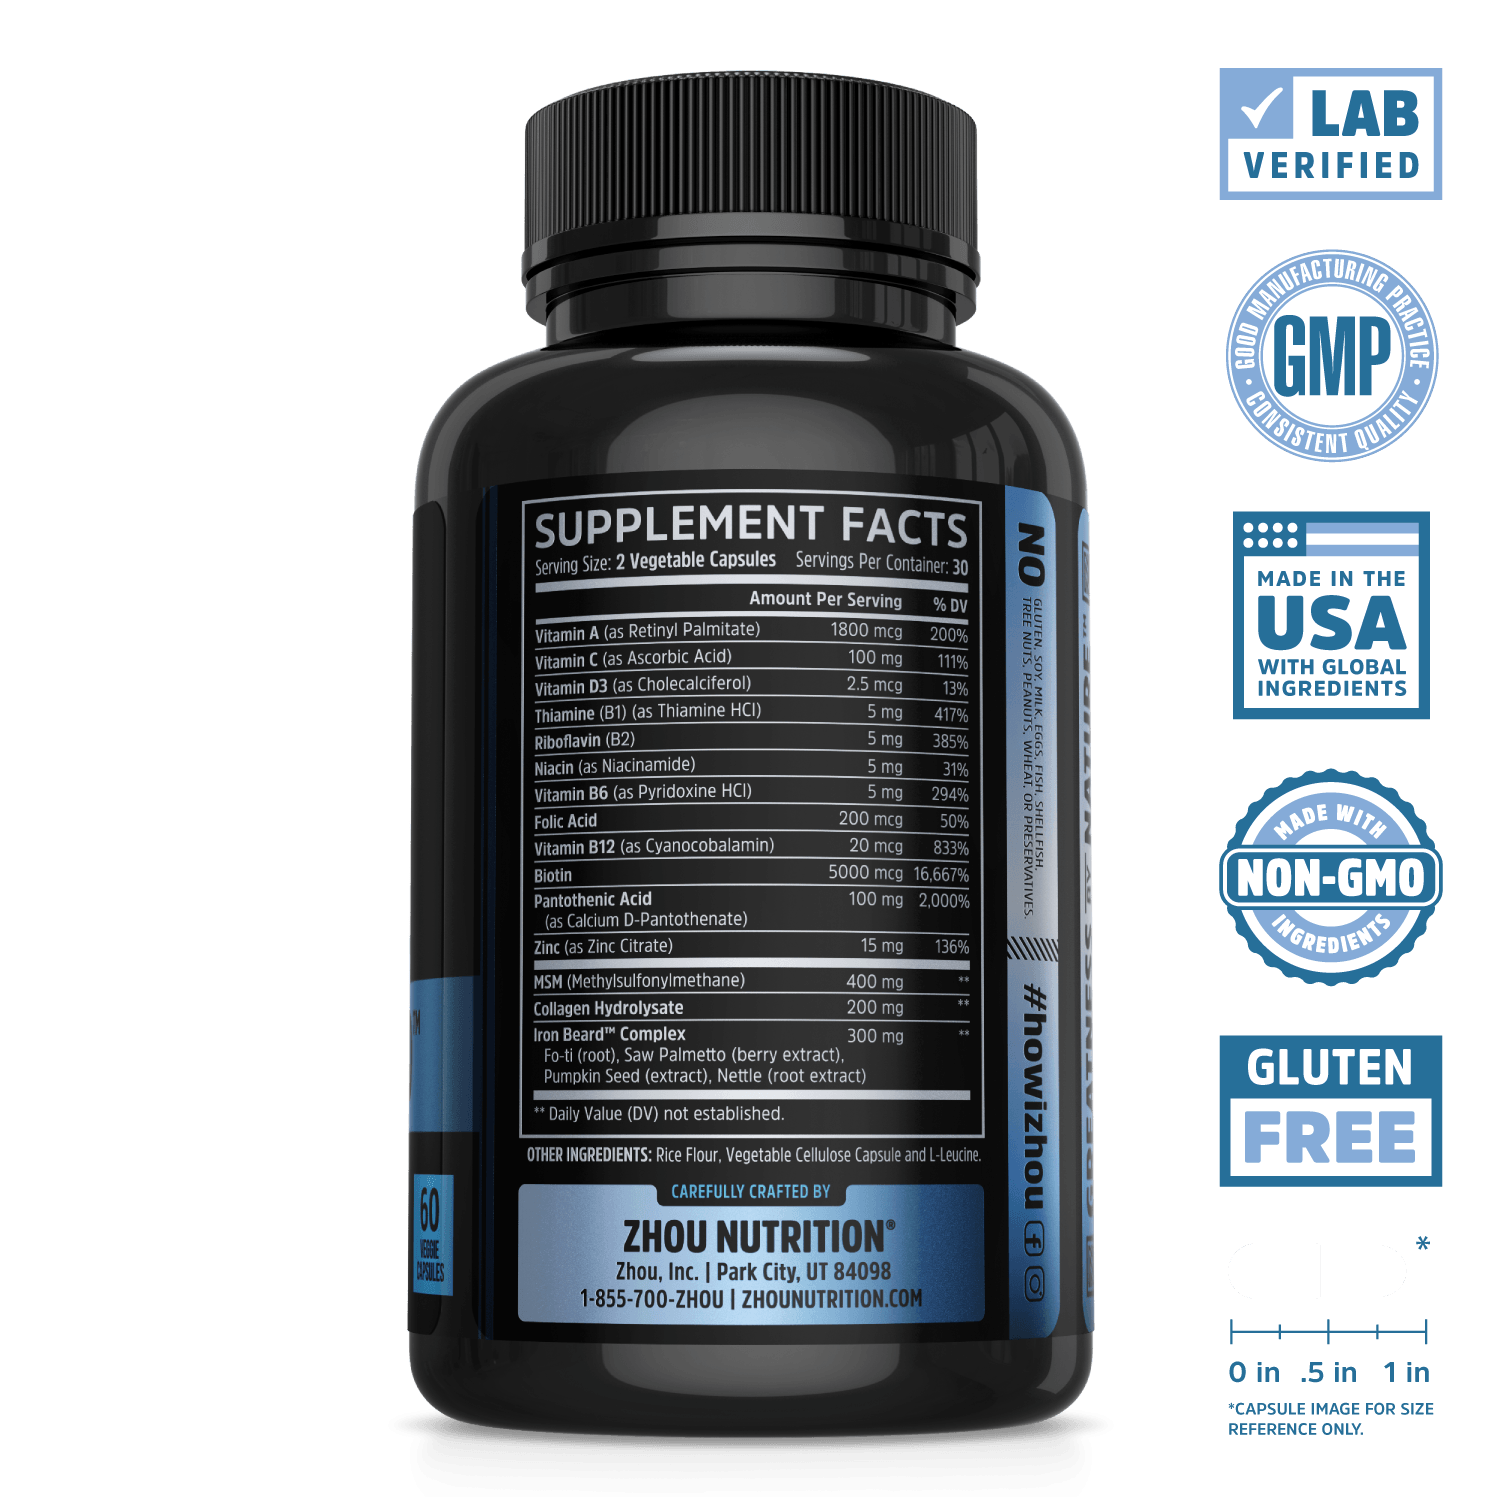 Iron Beard Supplement from Zhou Nutrition. Lab verified, good manufacturing practice, made in the USA with global ingredients, made with non-GMO ingredients, gluten free